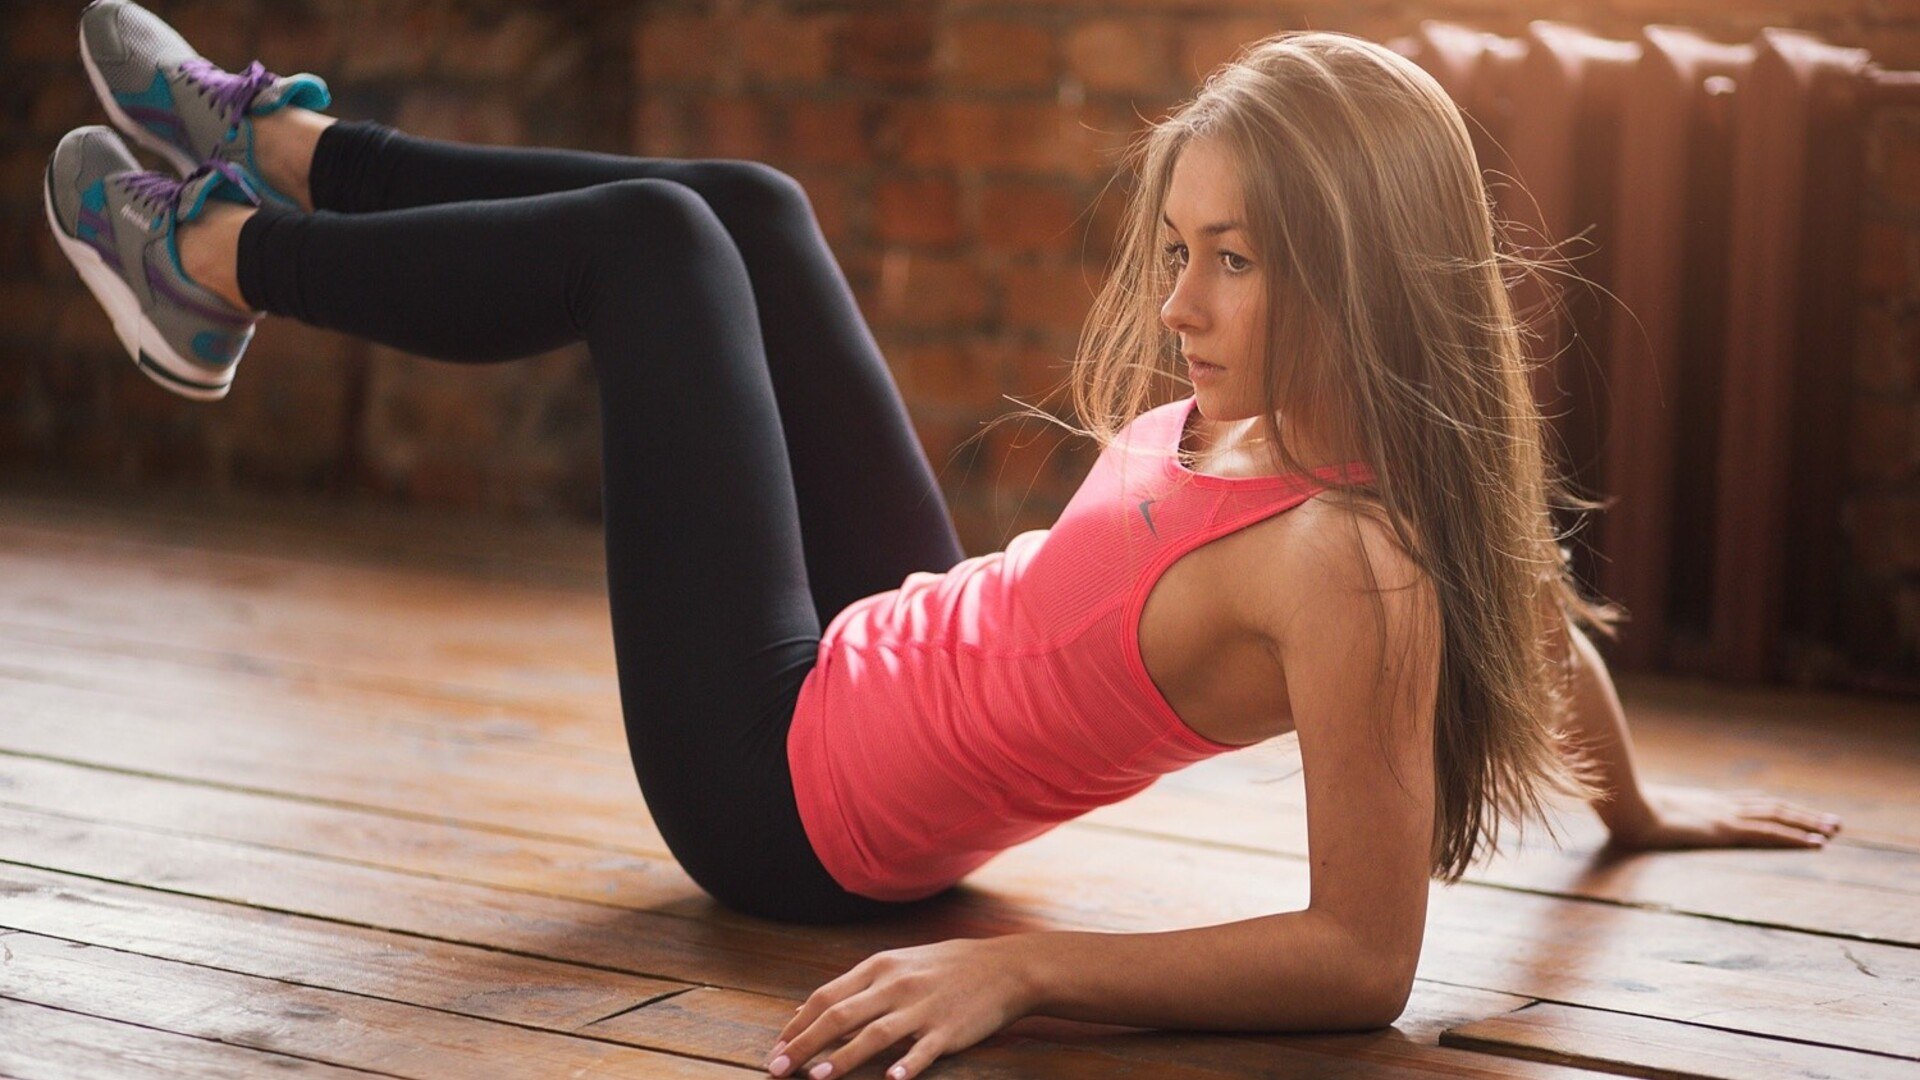 1920x1080 Yoga Pants Laptop Full Hd 1080p Hd 4k Wallpapers Images Backgrounds Photos And Pictures